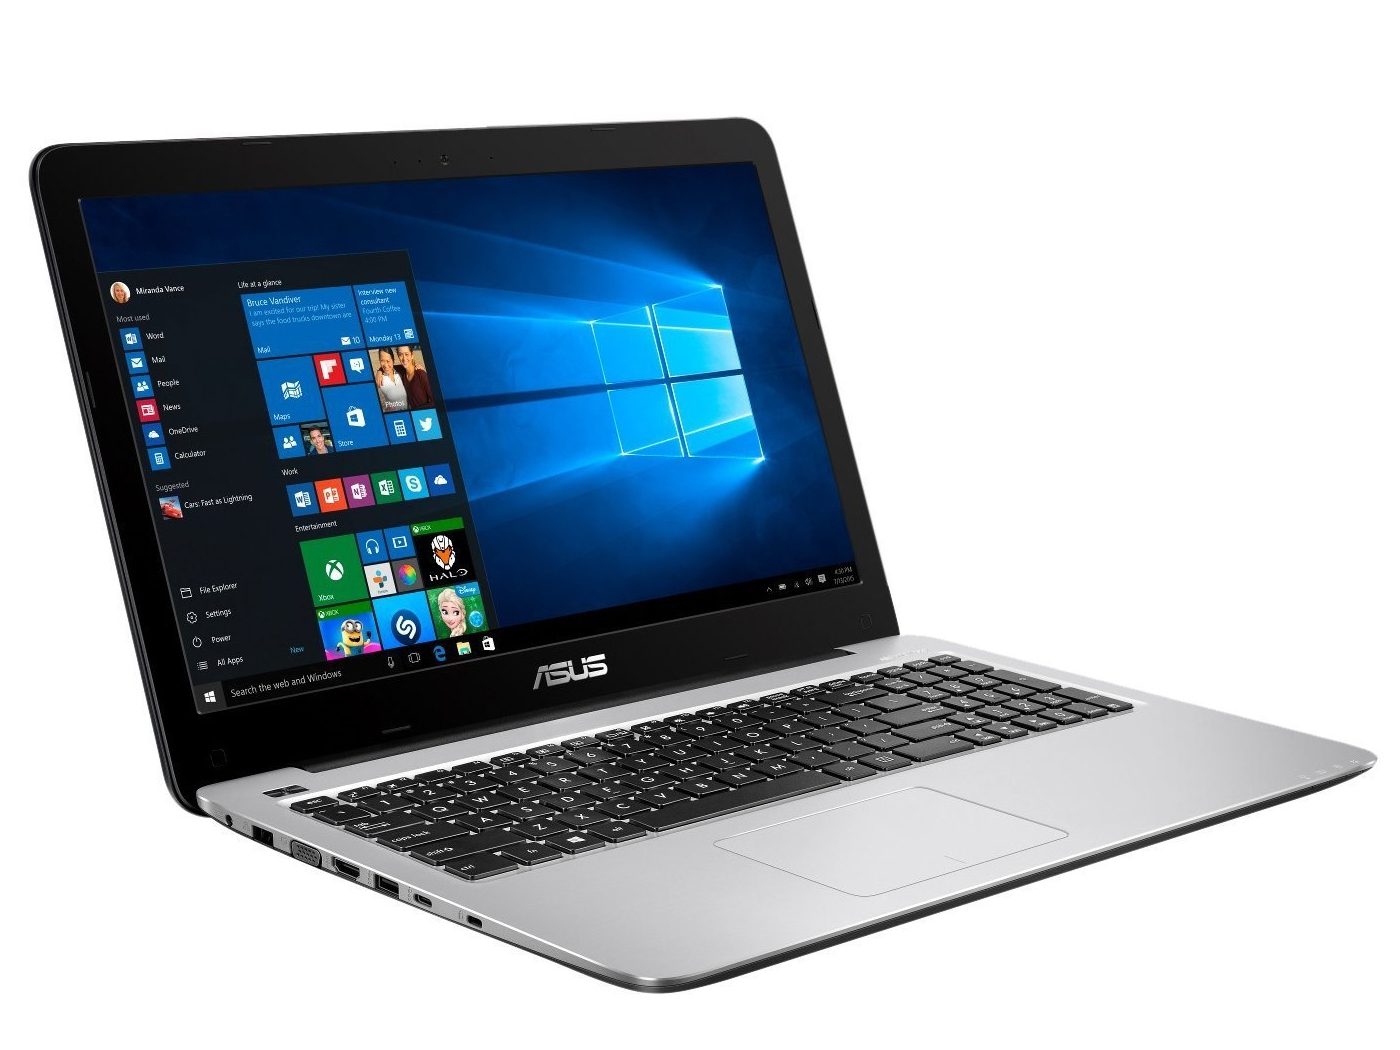 Asus VivoBook X556UQ XO076T Notebook Review 168269 0 together with Dell I620 229NBK Inspiron 620 Desktop  puter furthermore SLN301105 in addition Segotep Tg Tempered Glass Fully Aluminium M Atx Itx Gaming Case also Dell Xps 15 9560 Review. on usb slot for dell computer